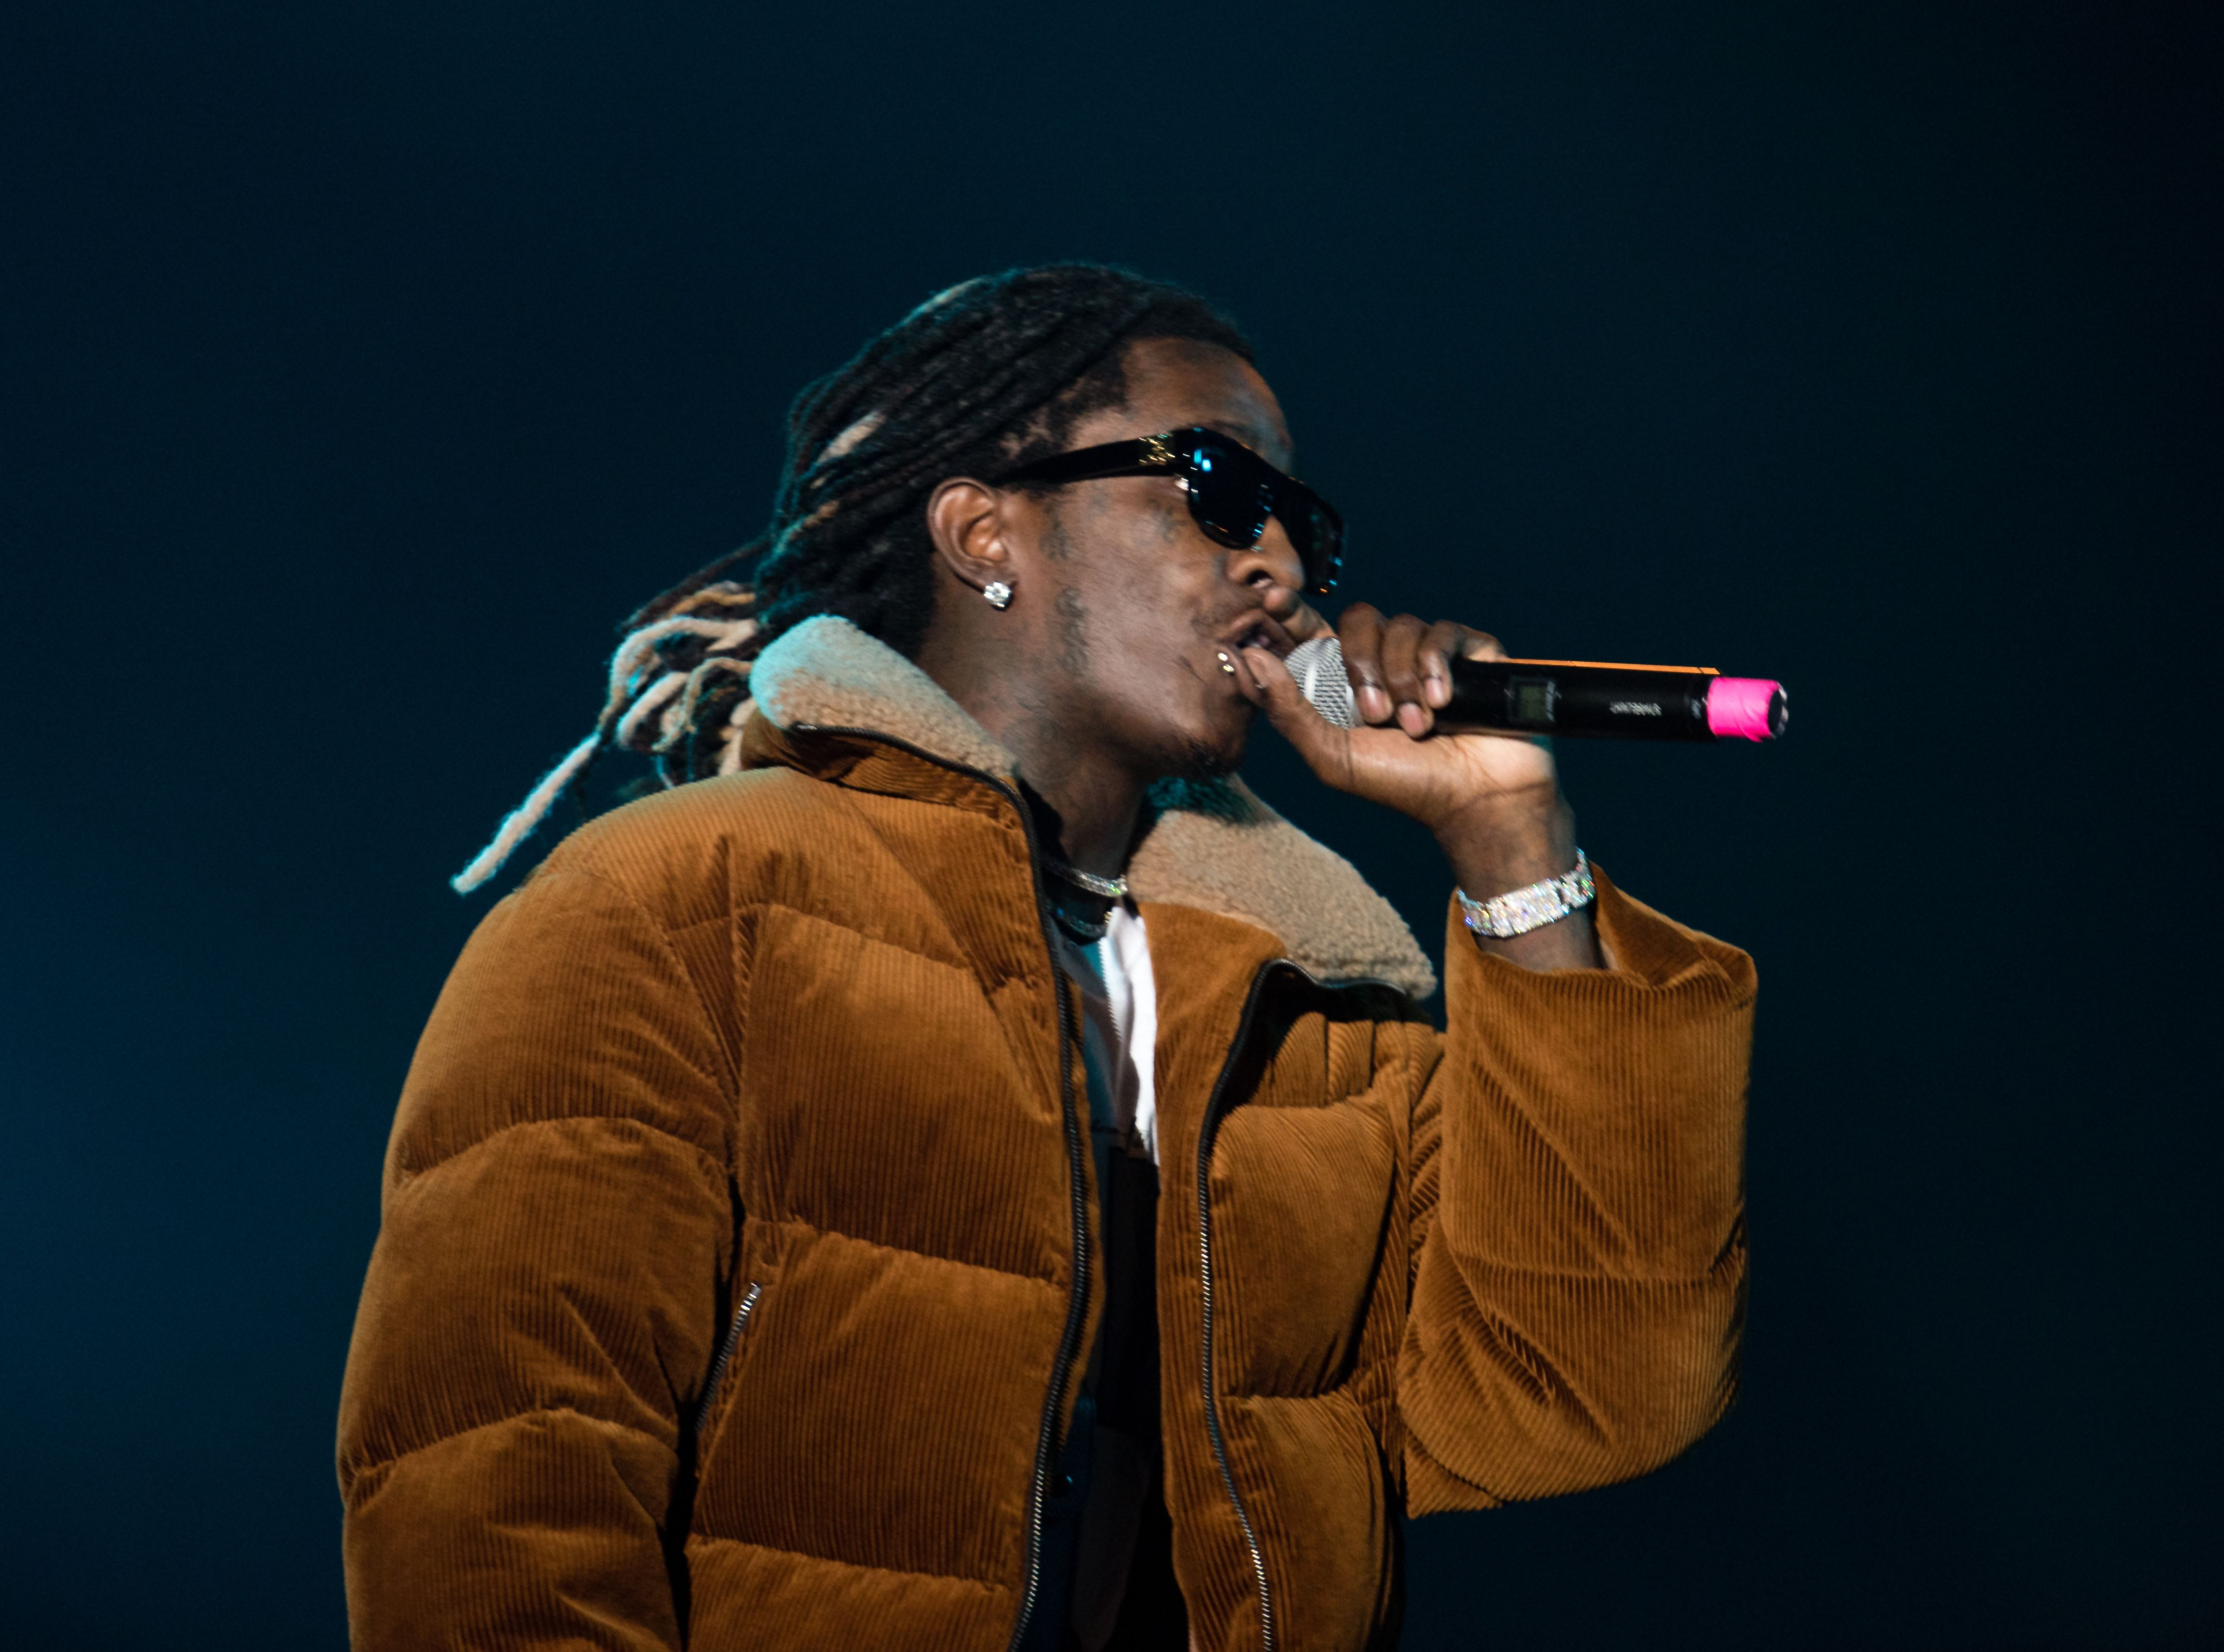 Young Thug performing on stage.